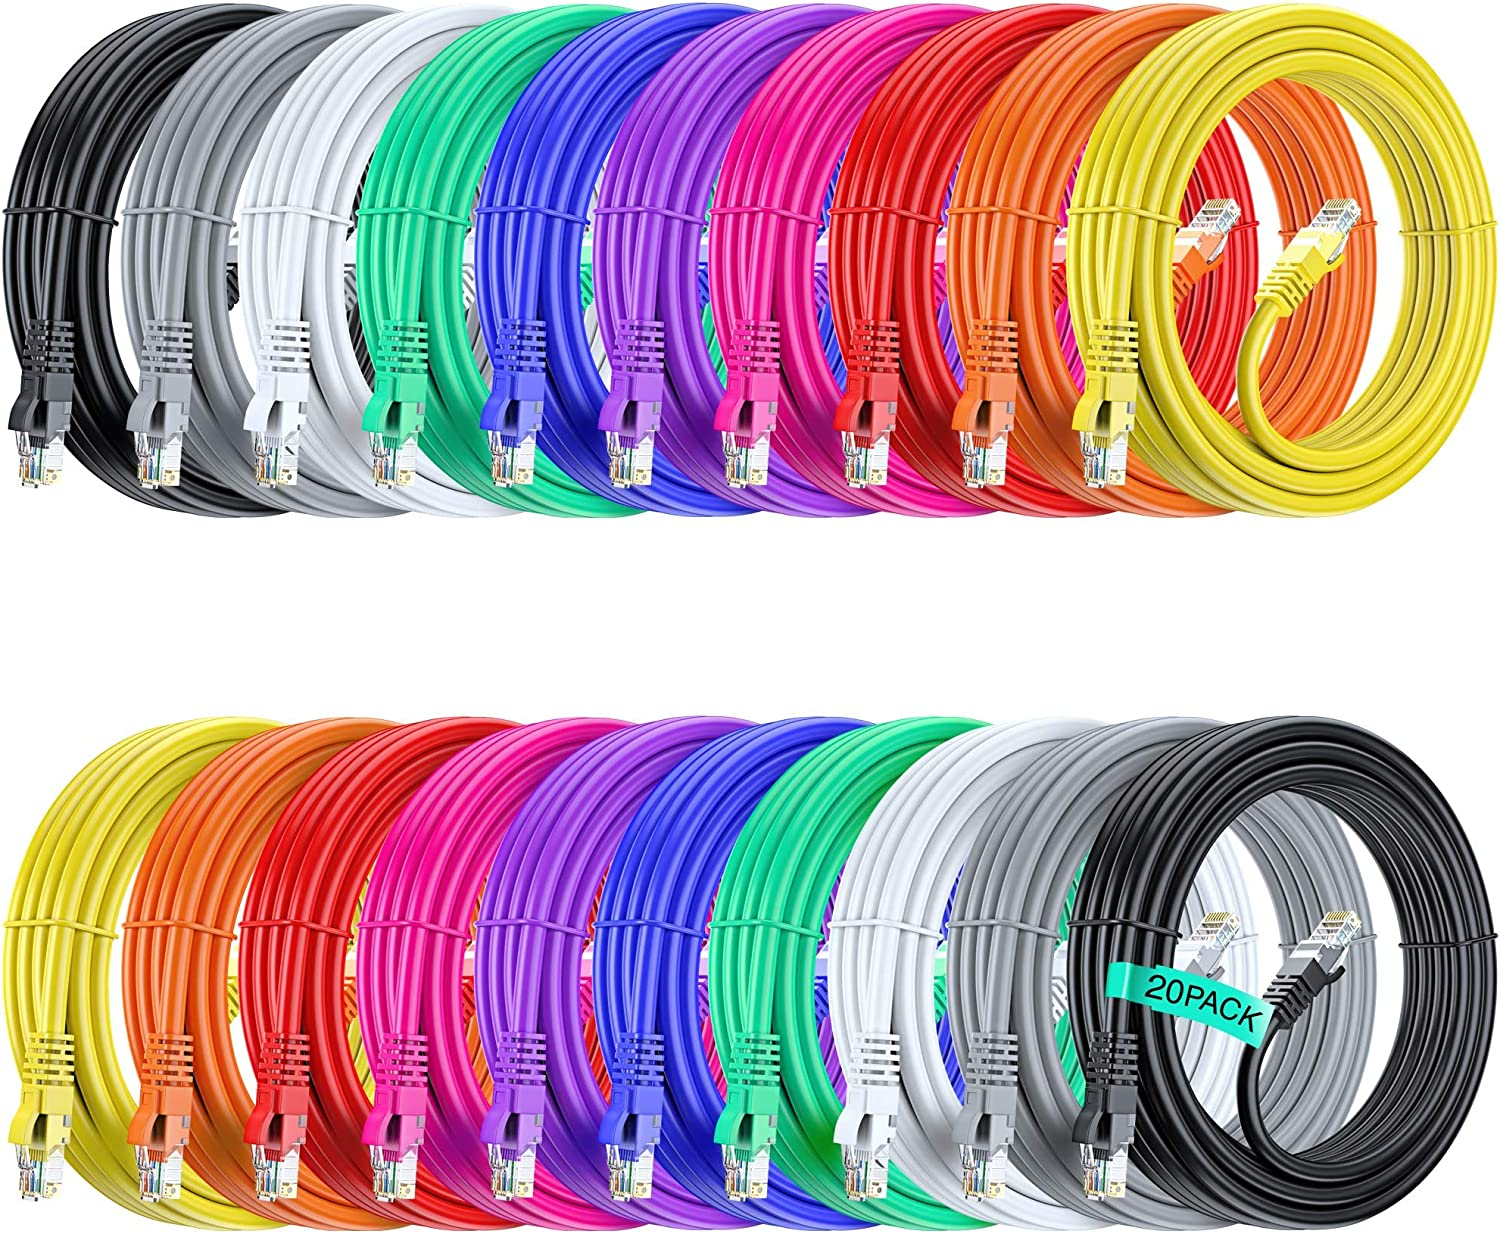 Maximm Ethernet Cable 15ft Cat Very popular 6 Pure Directly managed store LAN UL Listed Copper UTP